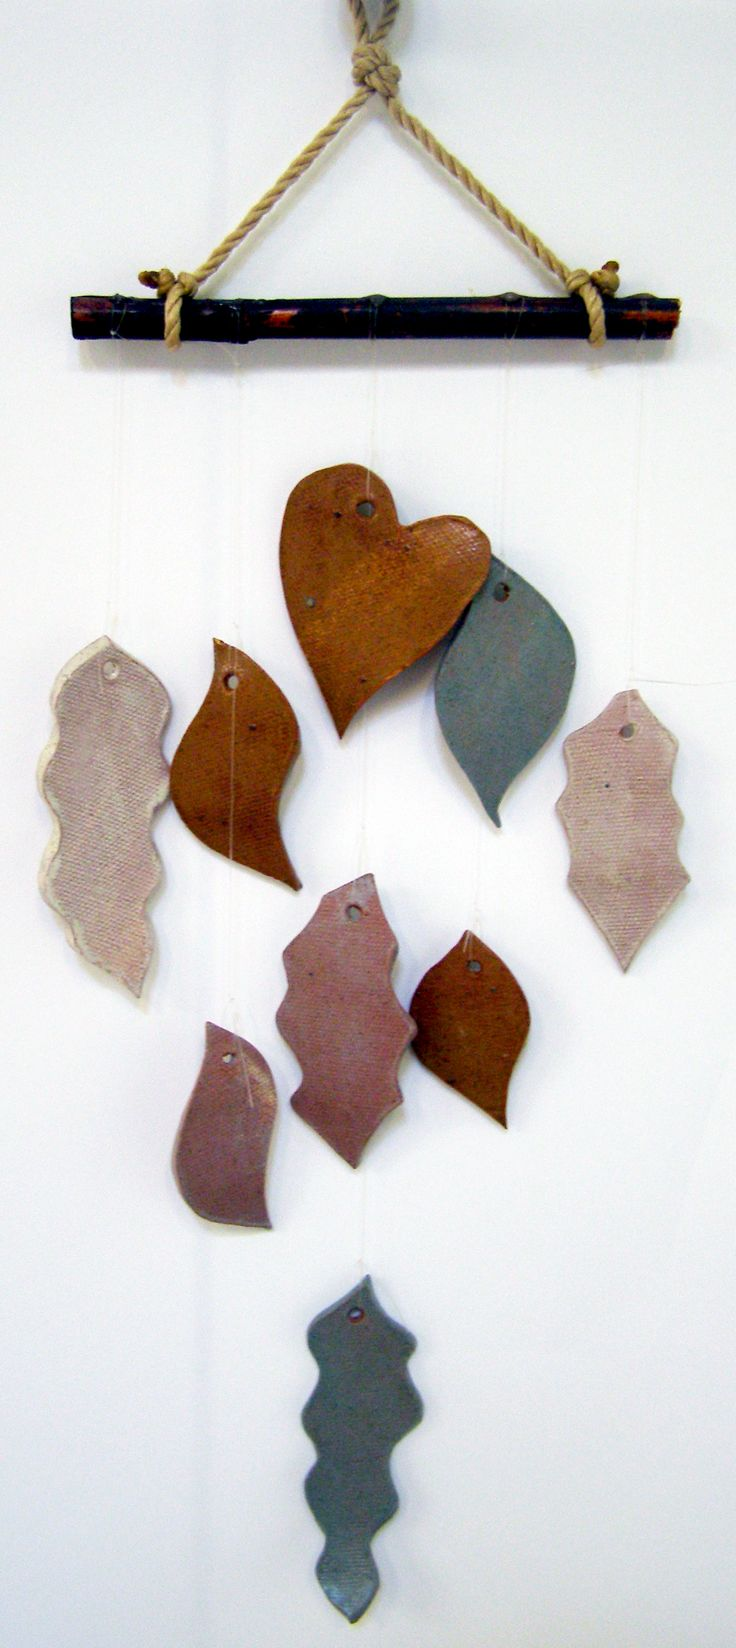 Clay Windchimes Workshop with Carla Foster